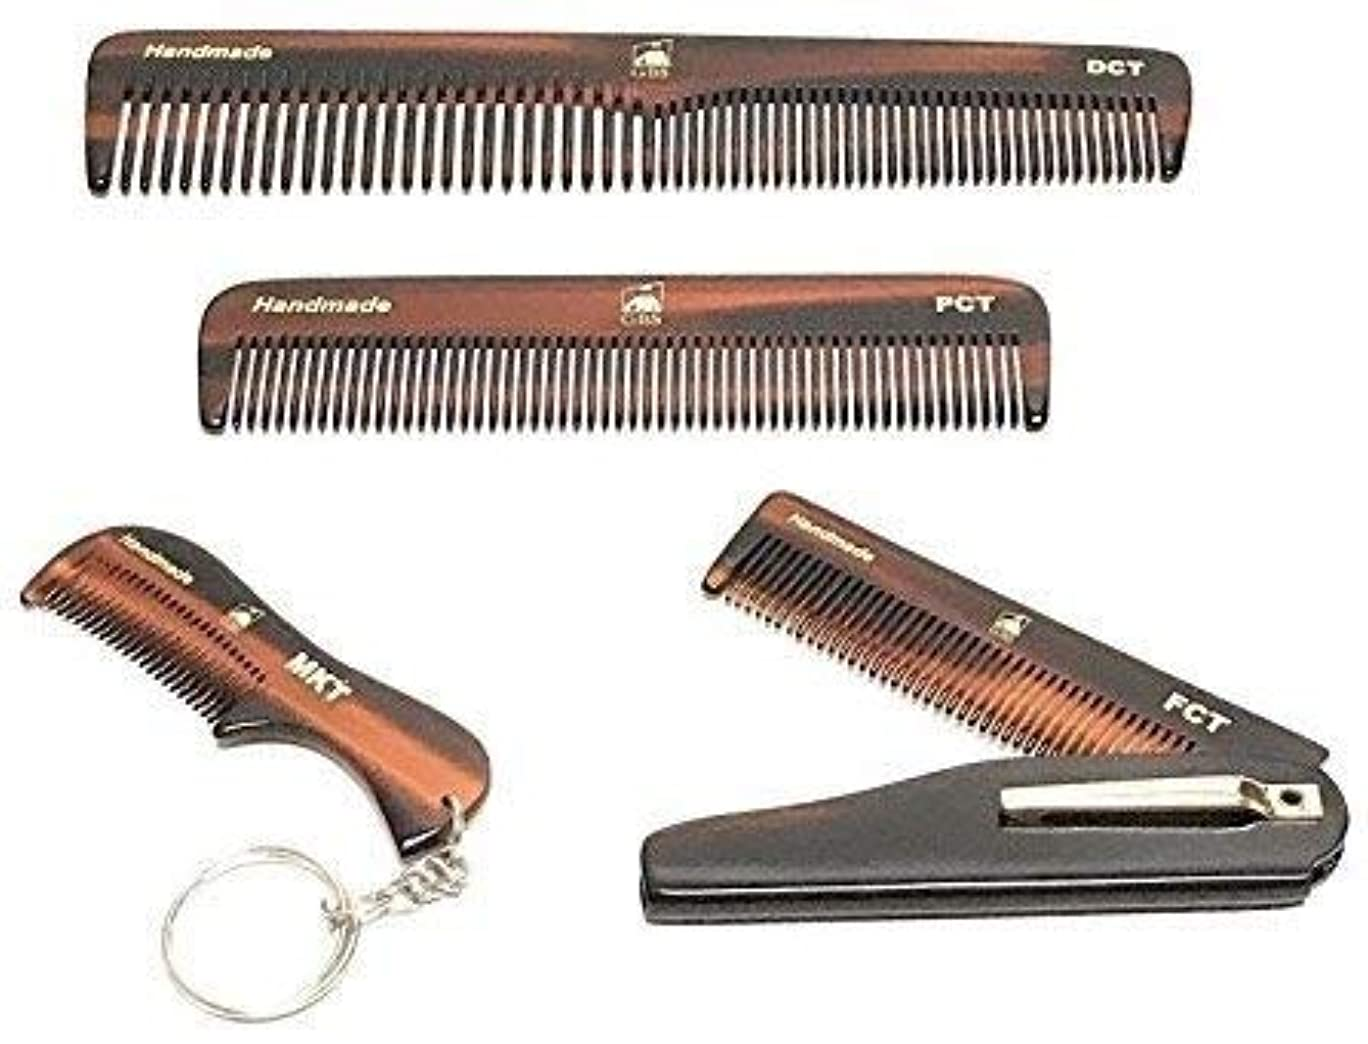 誇りに思う排除する奇跡GBS Handmade Styling Anti-Static No Snag Saw-cut Teeth Grooming Hair and Beard Comb Set - For Mens Care - Dressing...